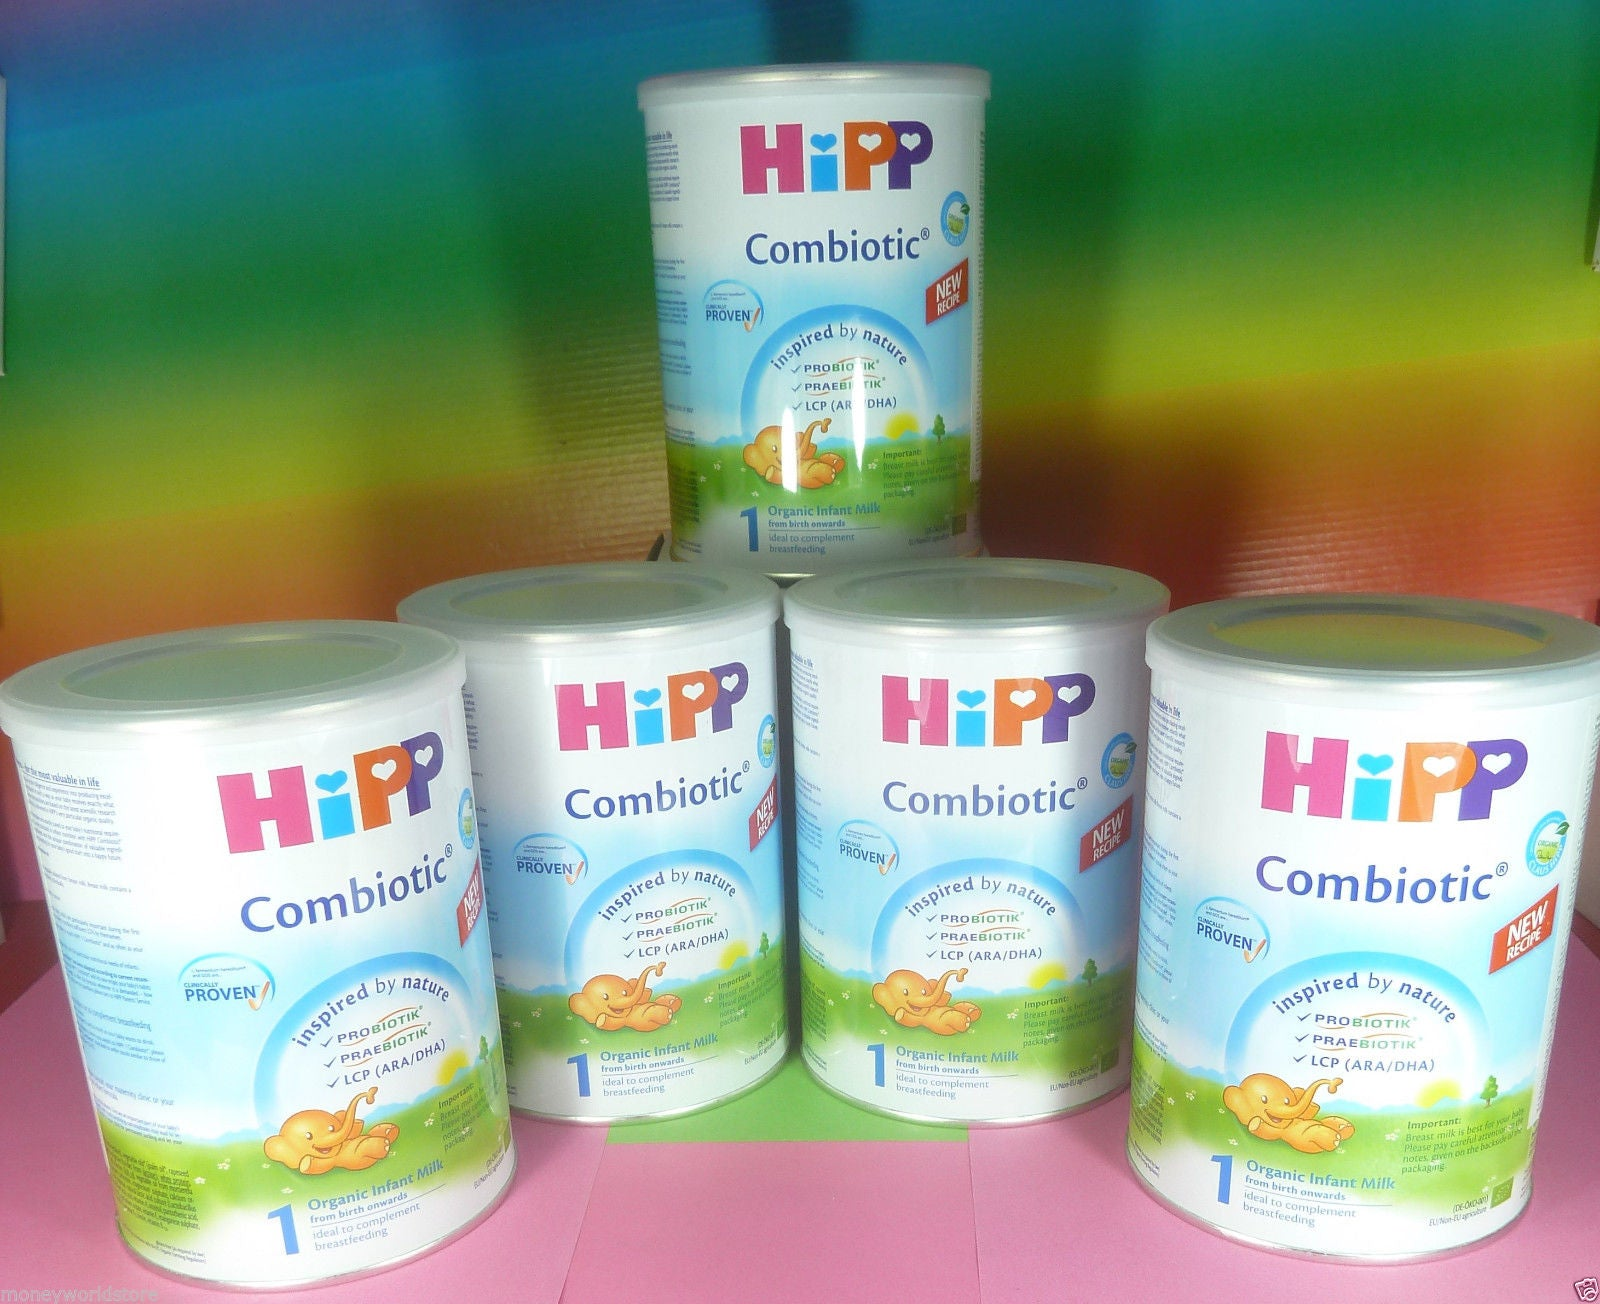 HiPP Combiotic 1 infant Milk From Birth Onwards Organic (5 tins x 350g)-moneyworld-store